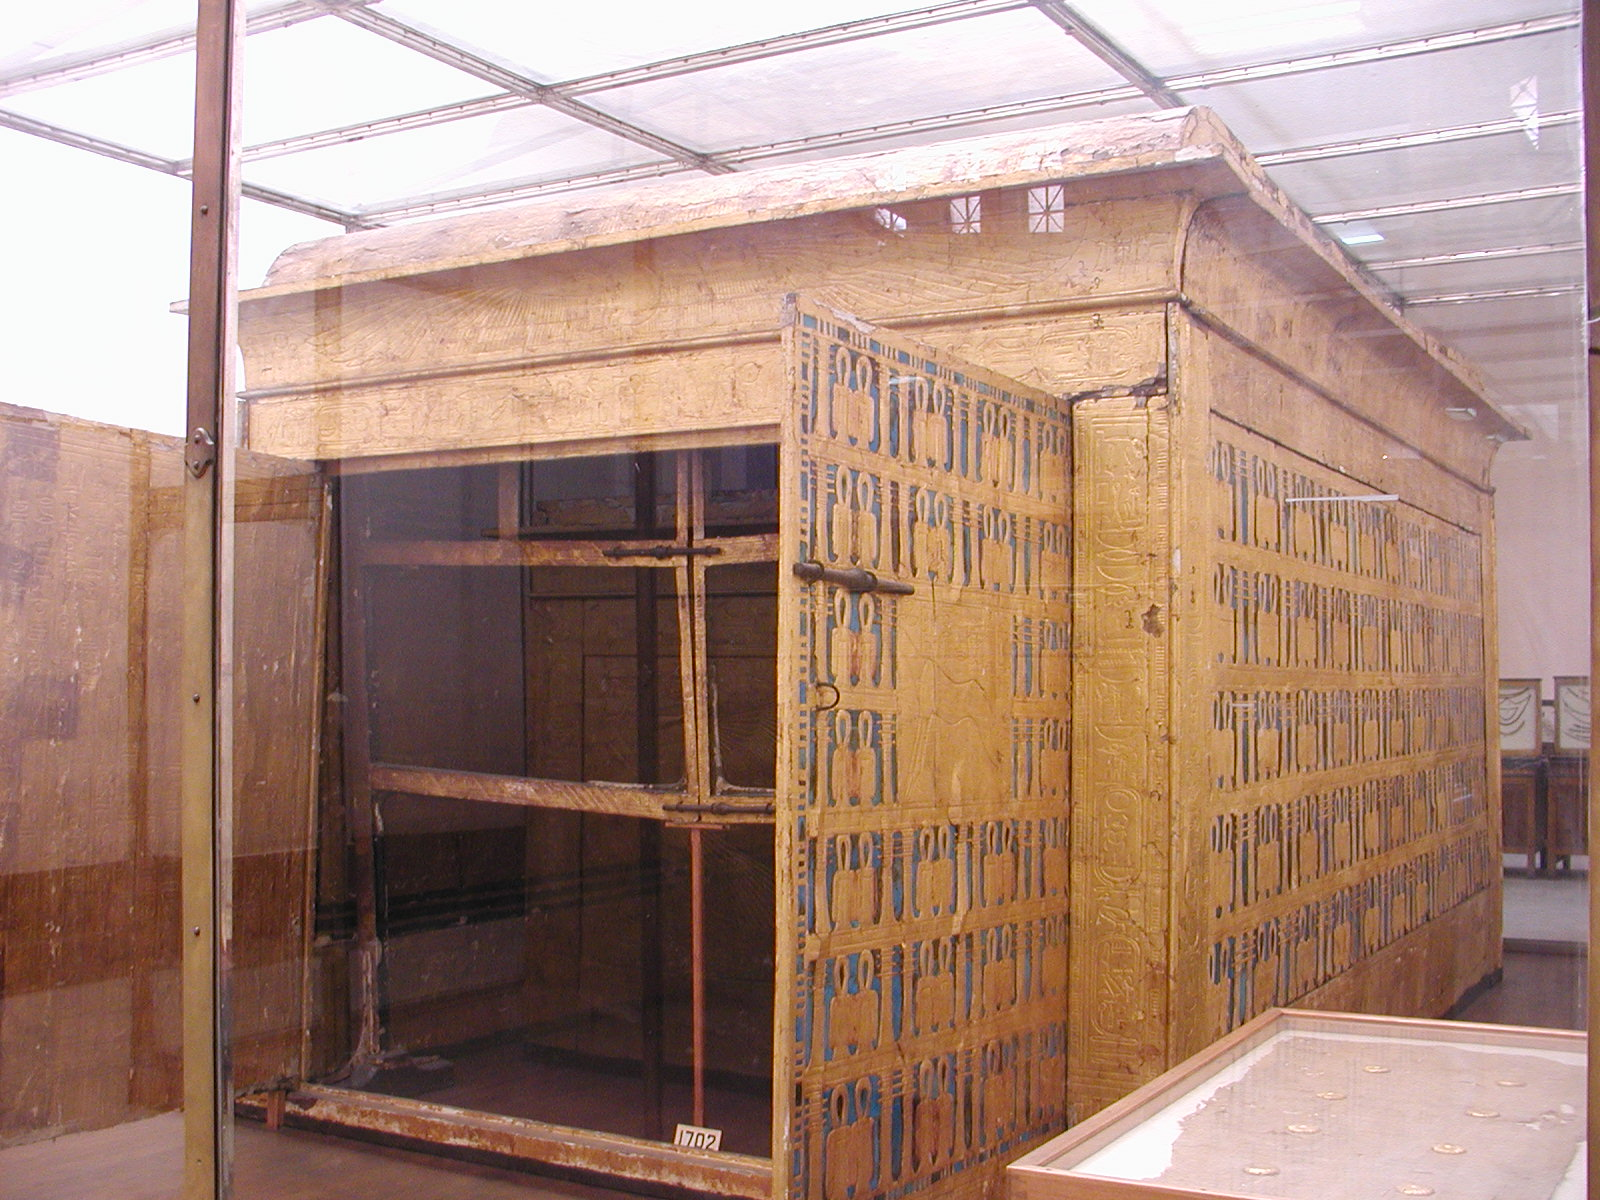 Funerary chapel found in Tutankhamun's tomb in the Valley of the Kings.